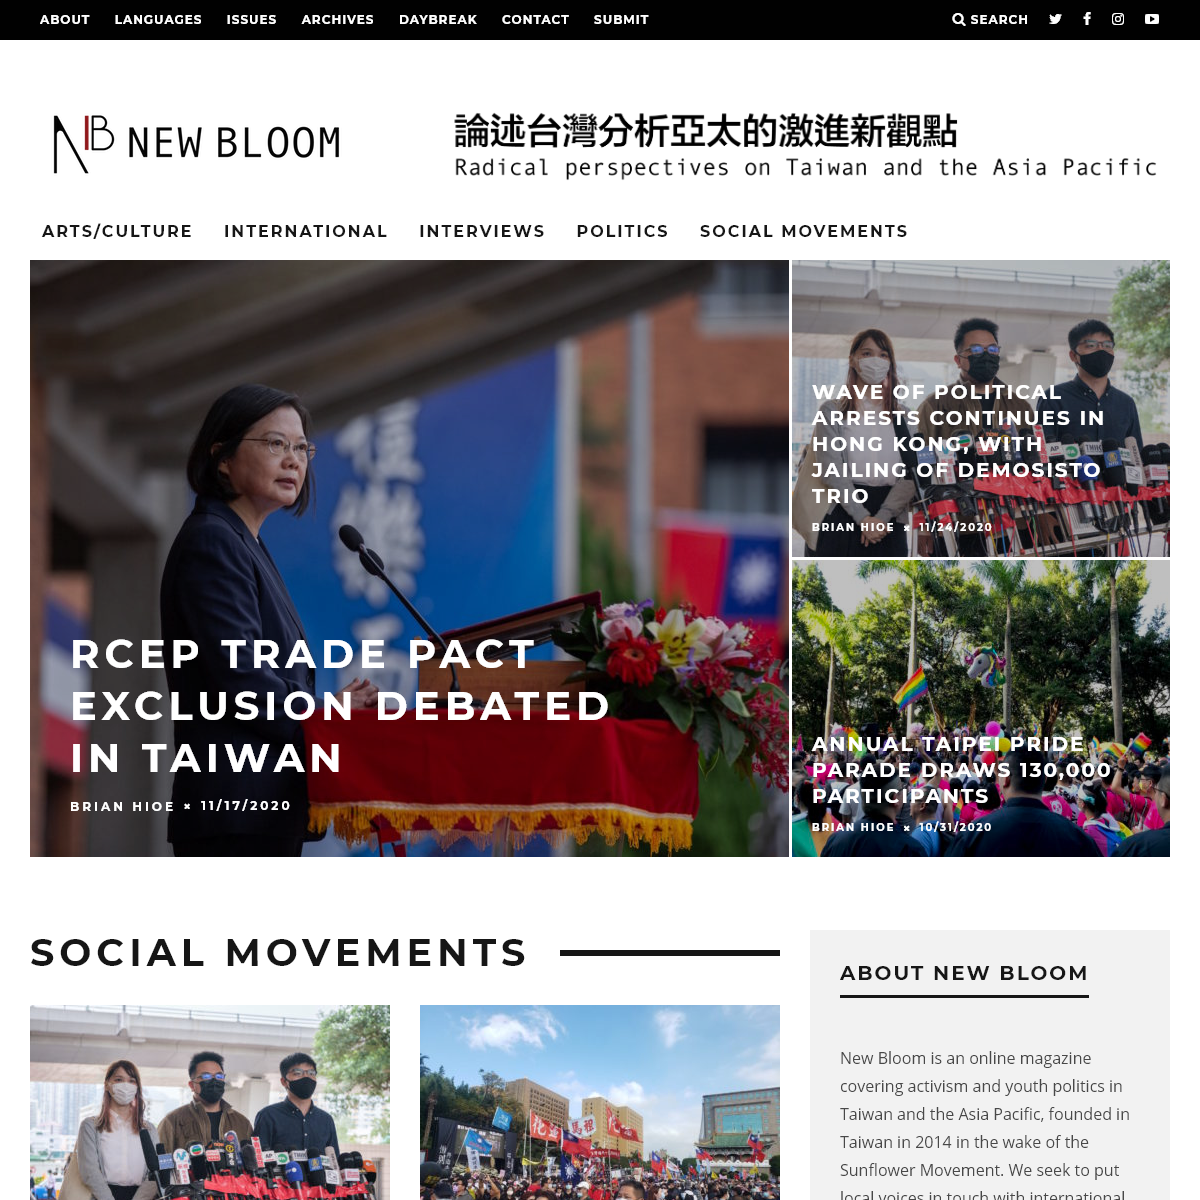 New Bloom Magazine - Radical Perspectives on Taiwan and the Asia Pacific